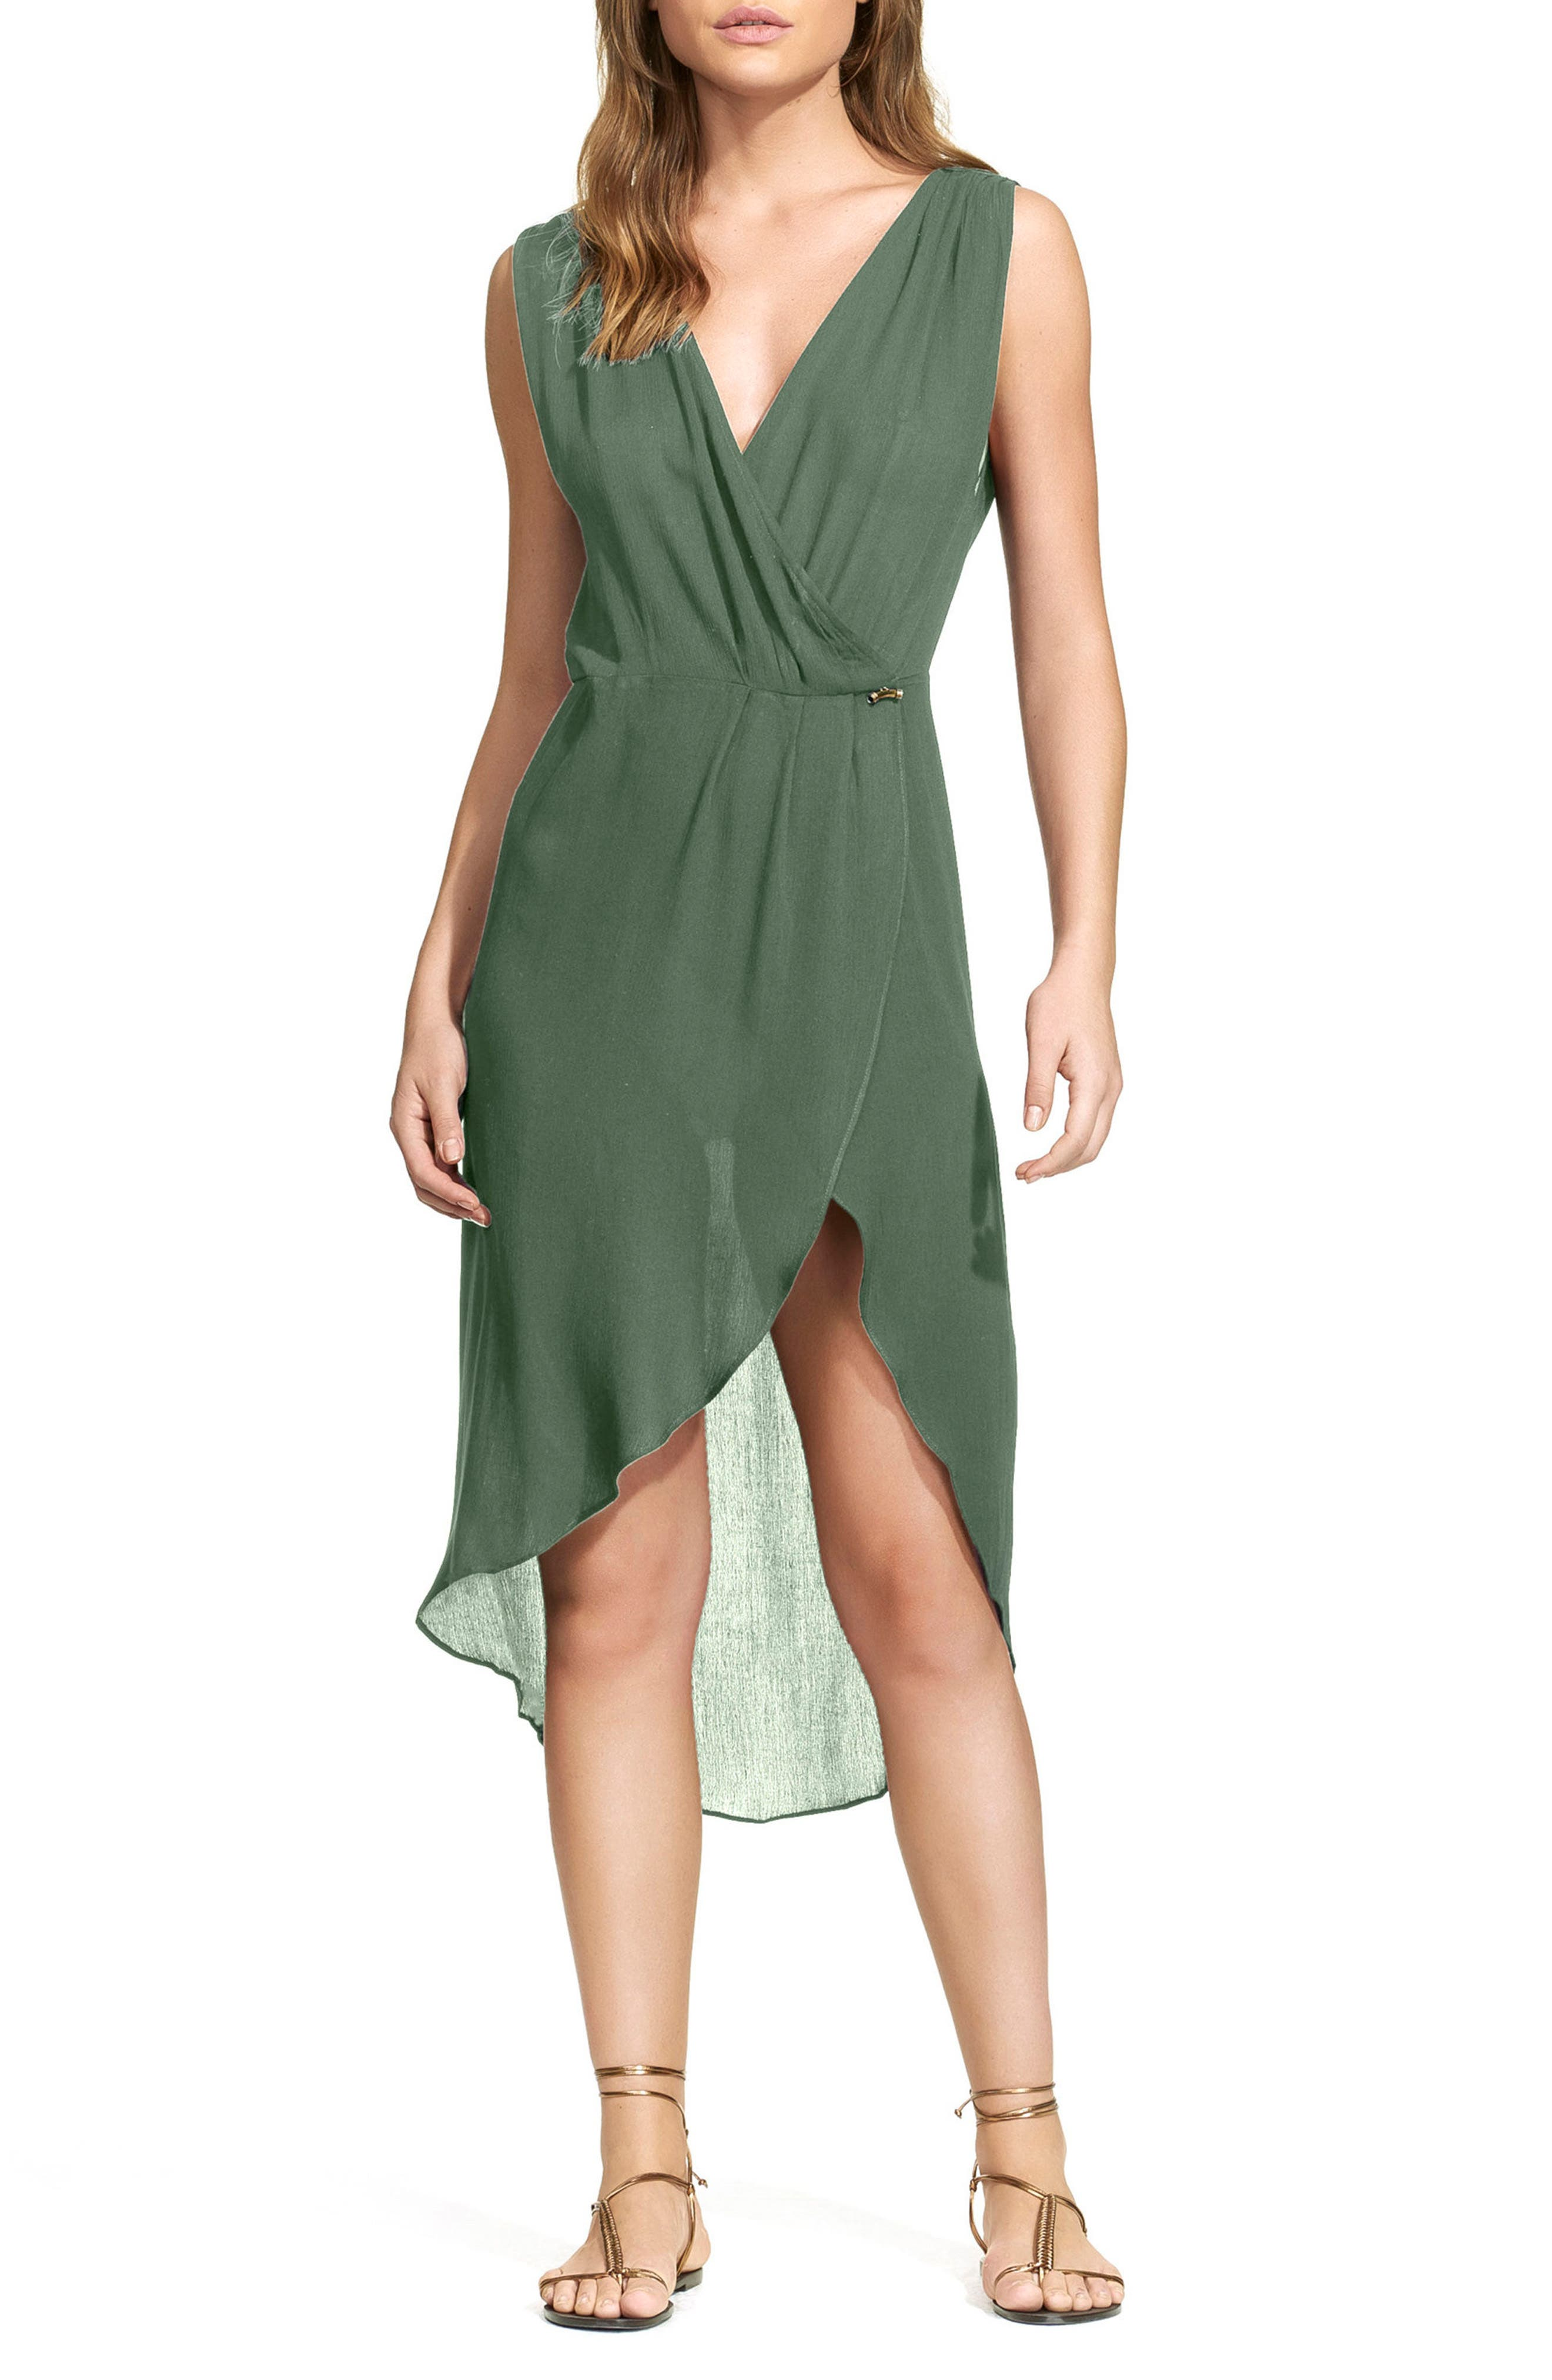 Gisele Cover-Up Caftan,                         Main,                         color, 300